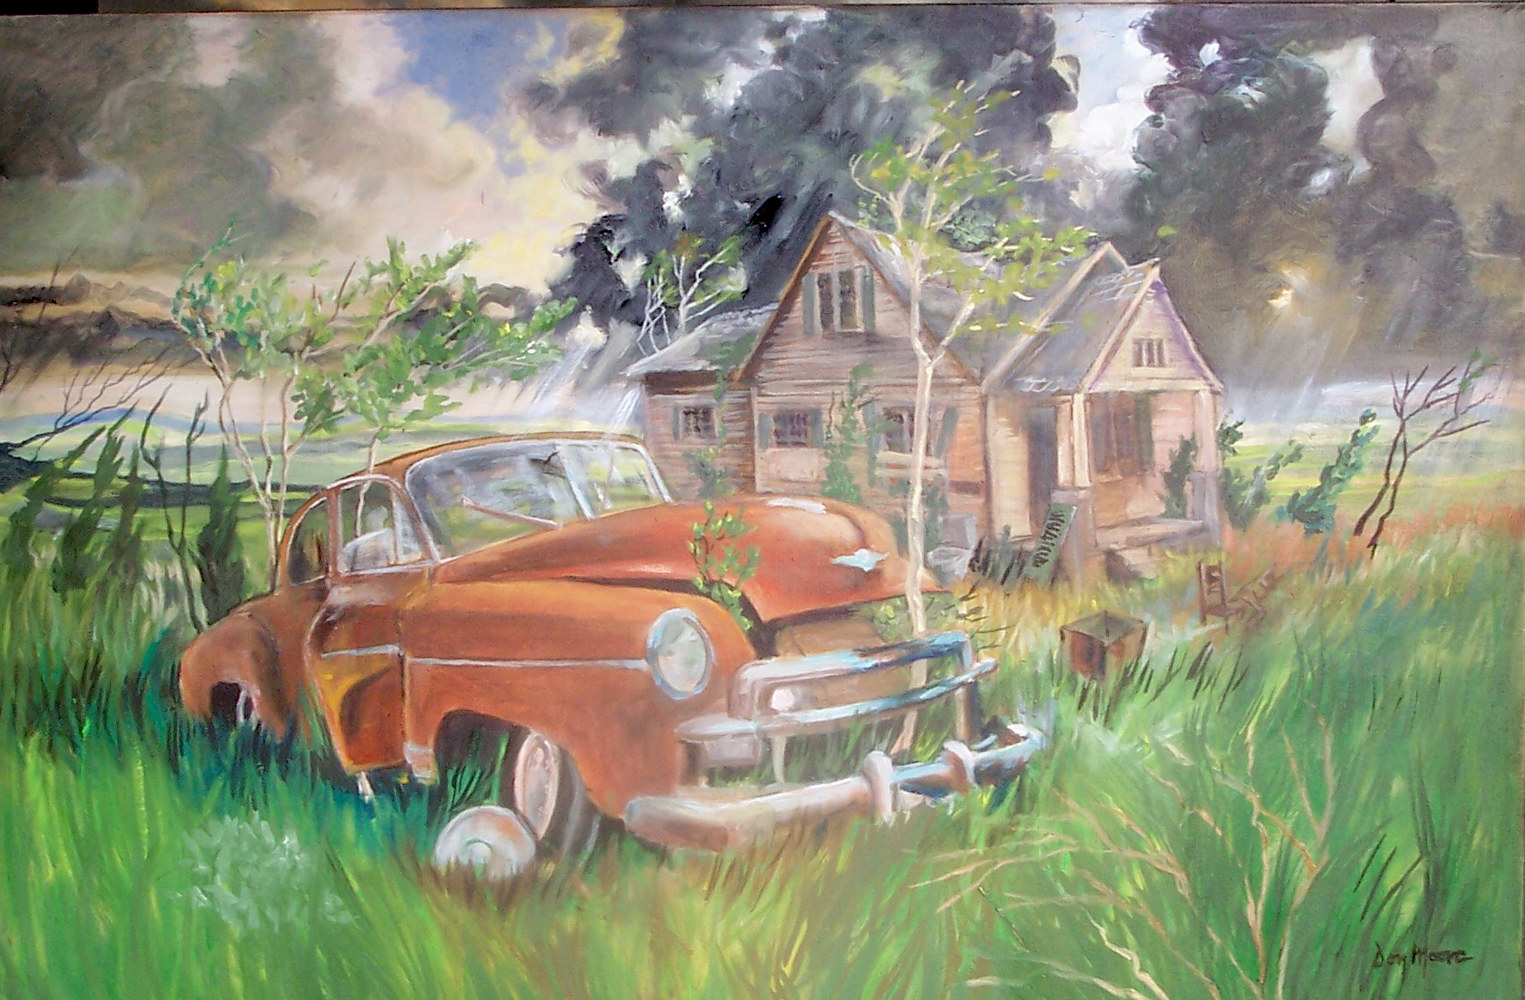 Landscape with 49 Chevy by Don Moore